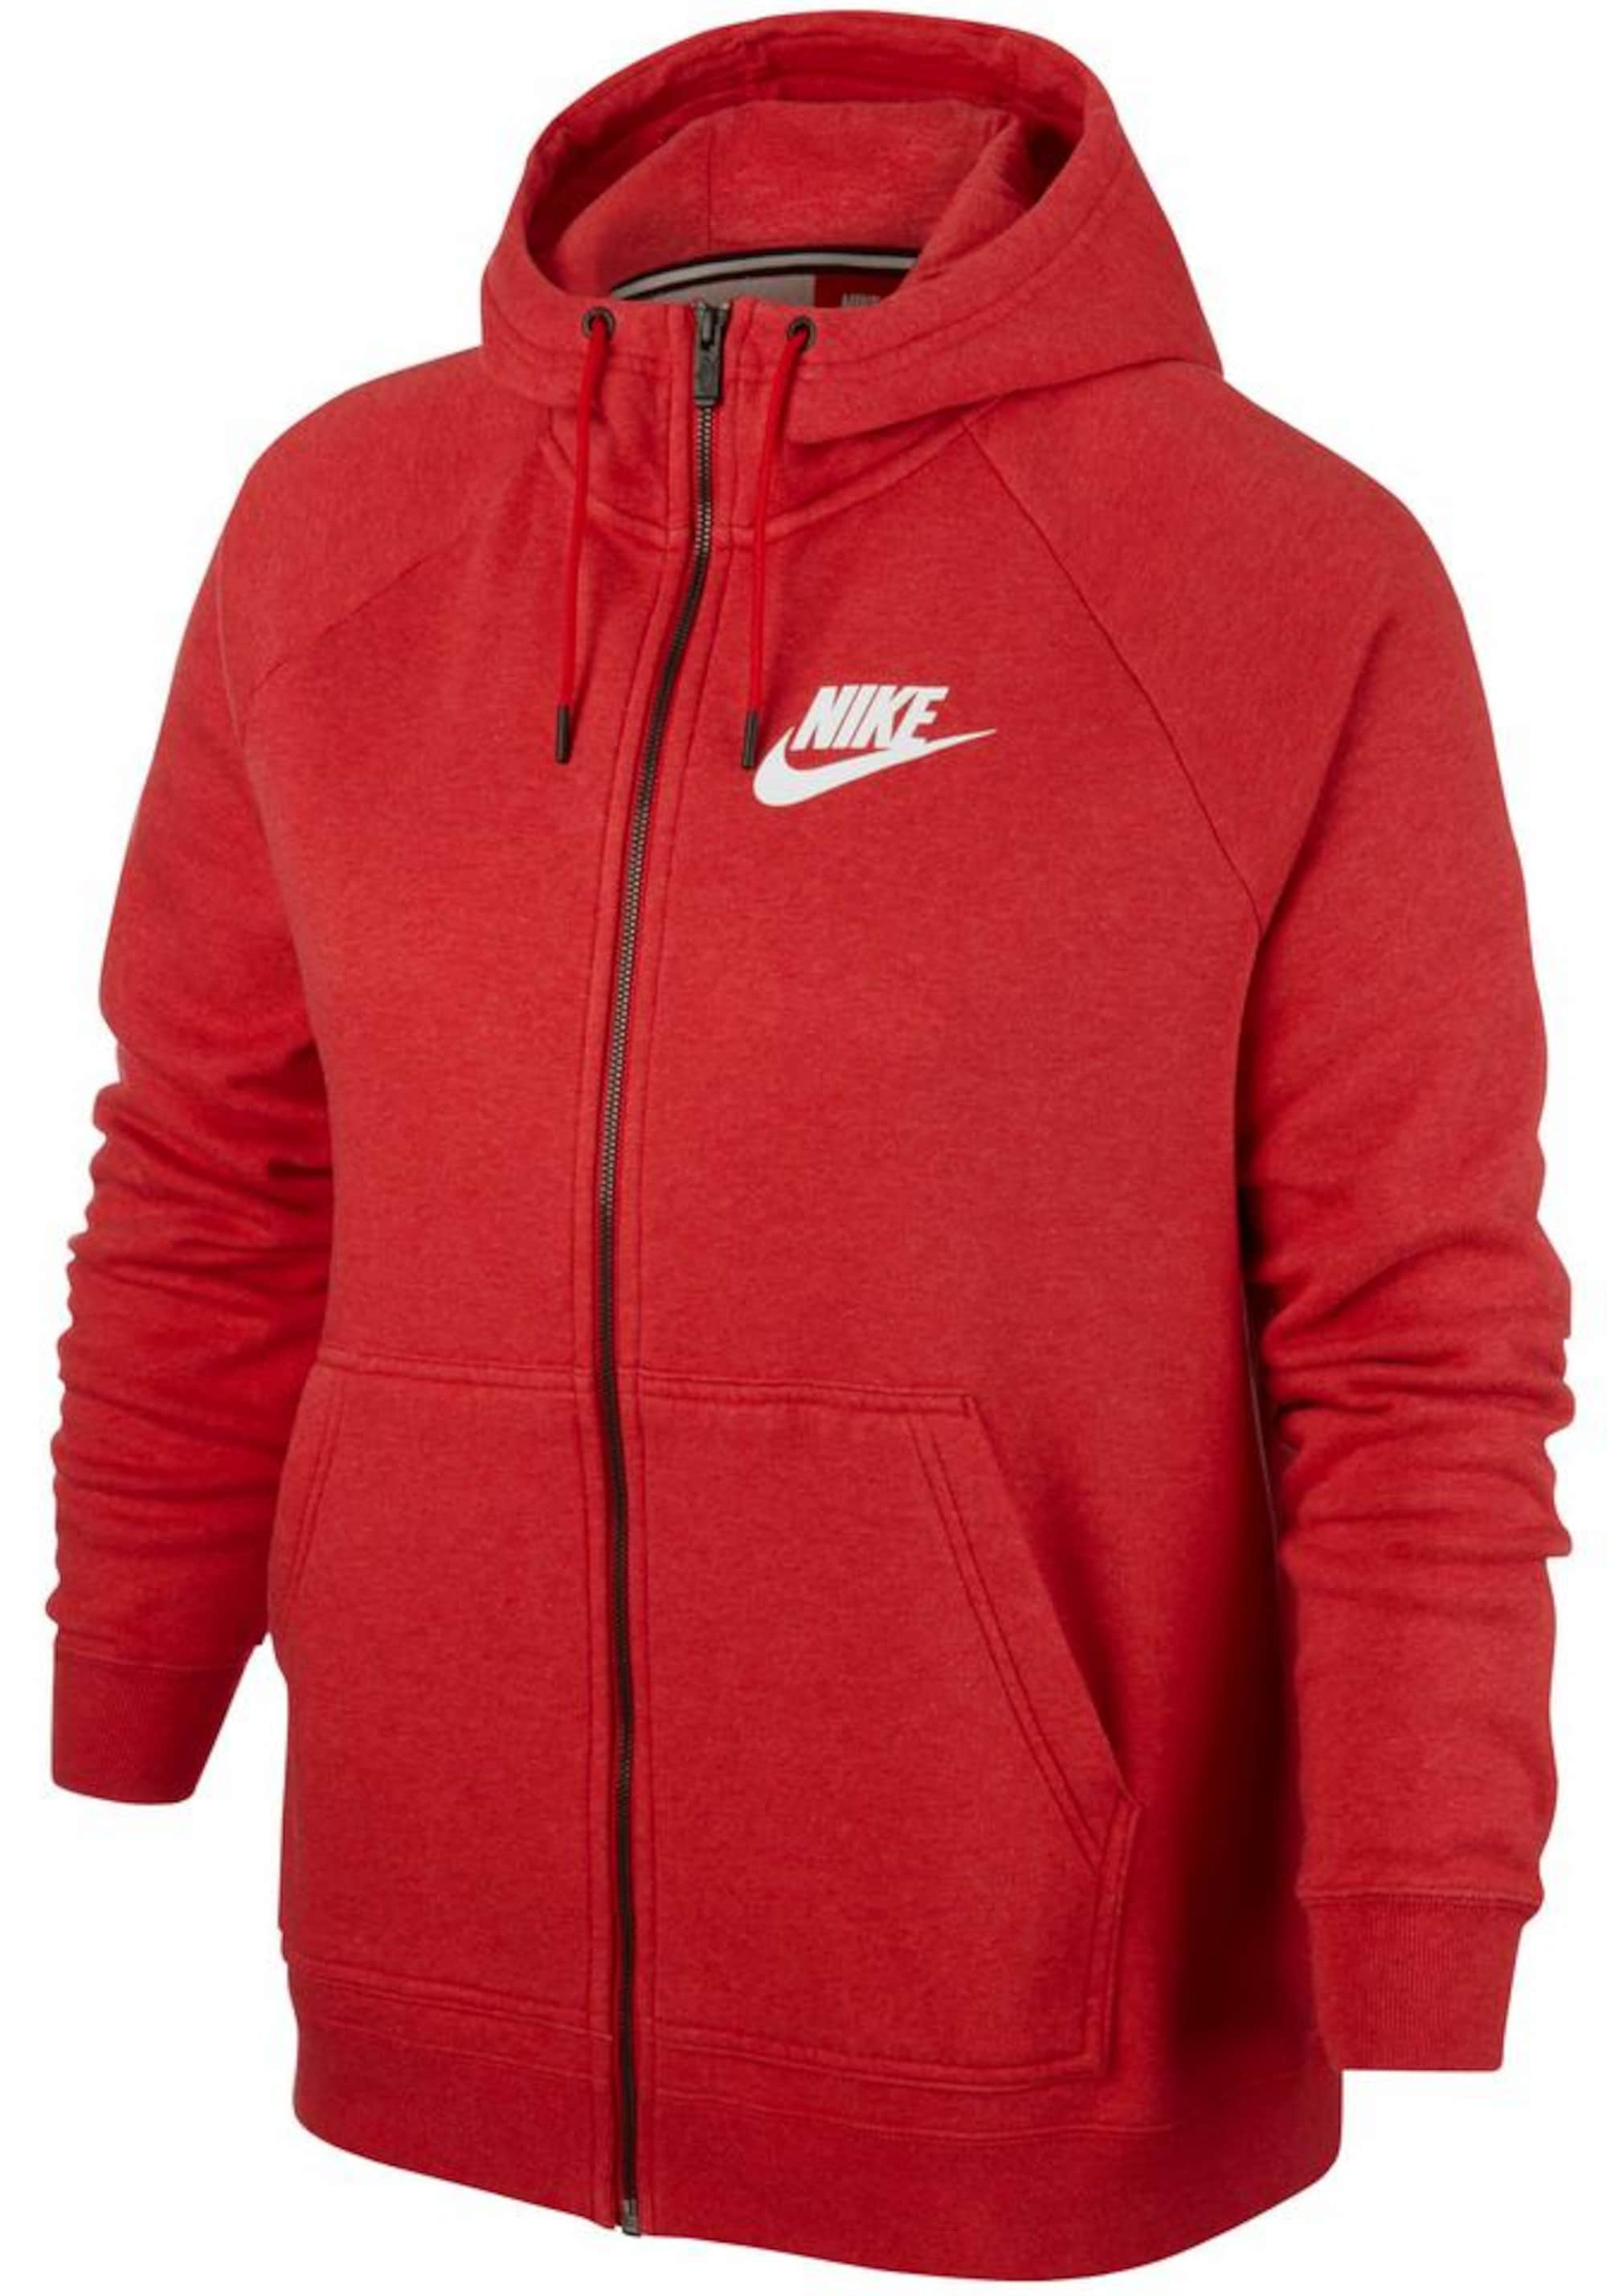 Kapuzensweatjacke ´RALLY HOODIE FZ SB EXT PLUS ...